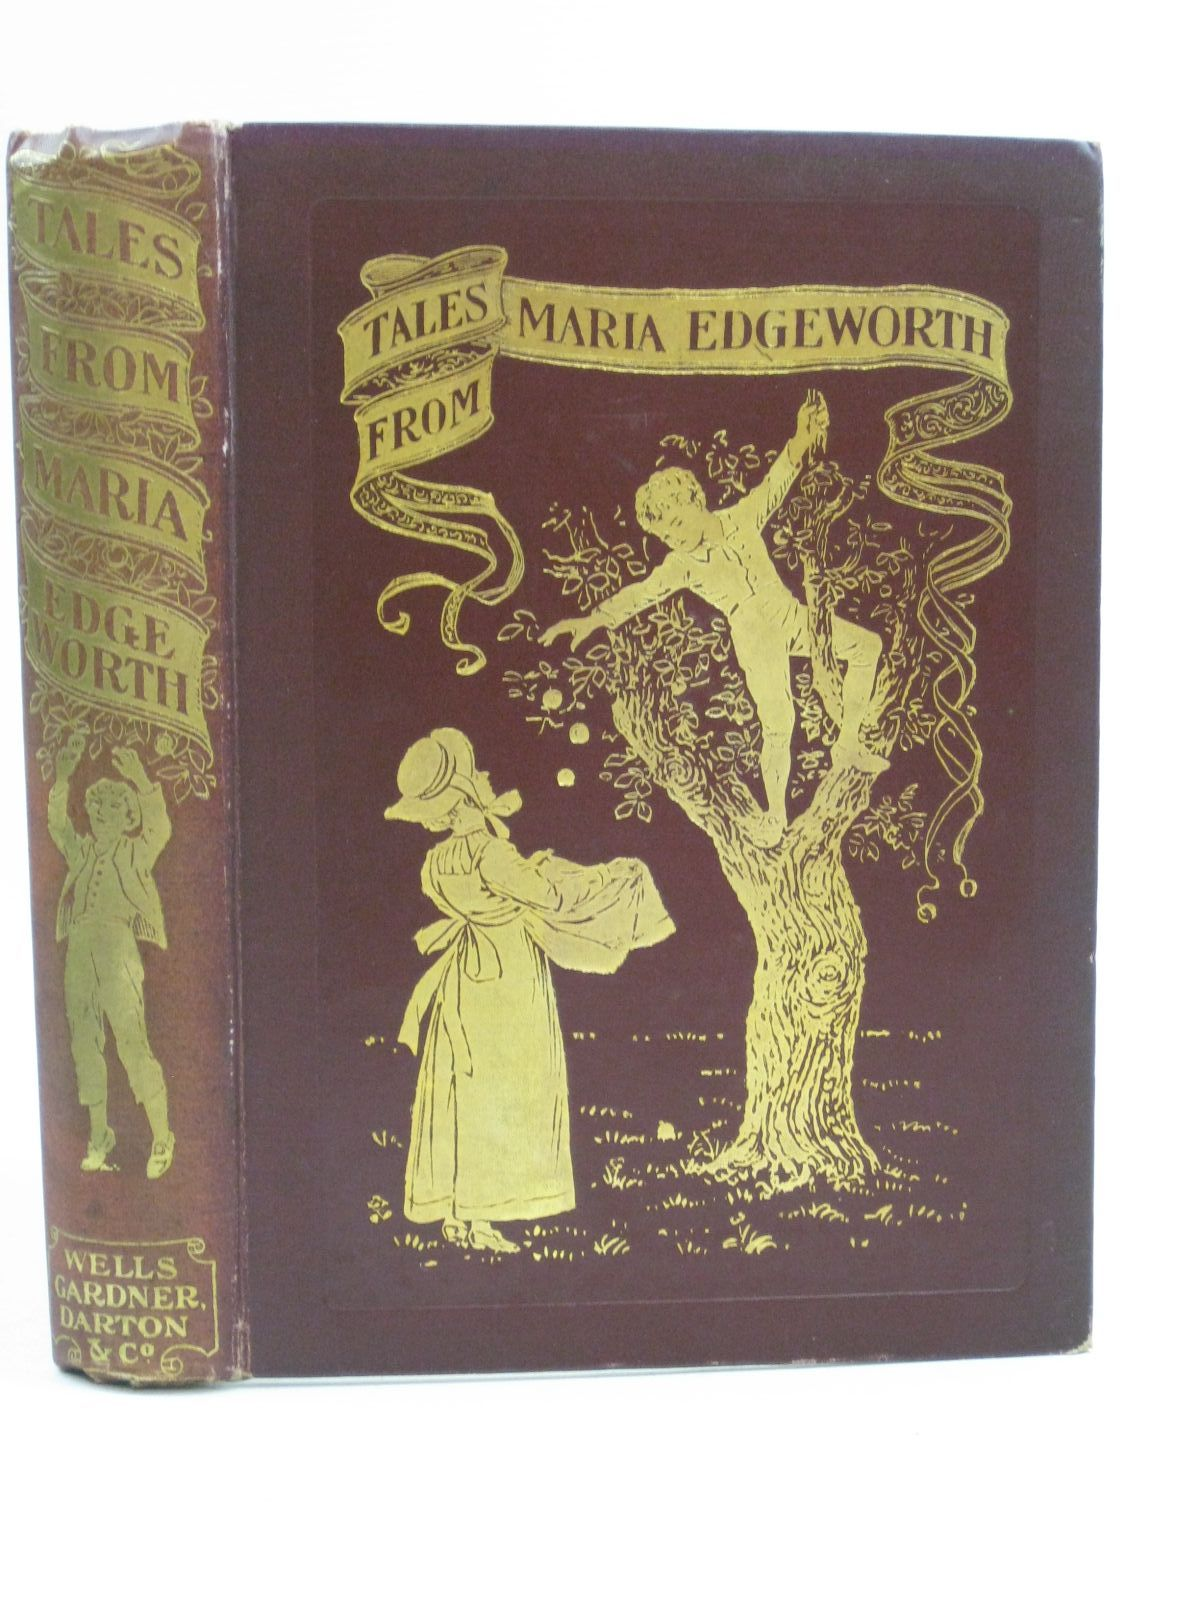 Photo of TALES FROM MARIA EDGEWORTH written by Edgeworth, Maria illustrated by Thomson, Hugh published by Wells Gardner, Darton & Co. Limited (STOCK CODE: 1315113)  for sale by Stella & Rose's Books